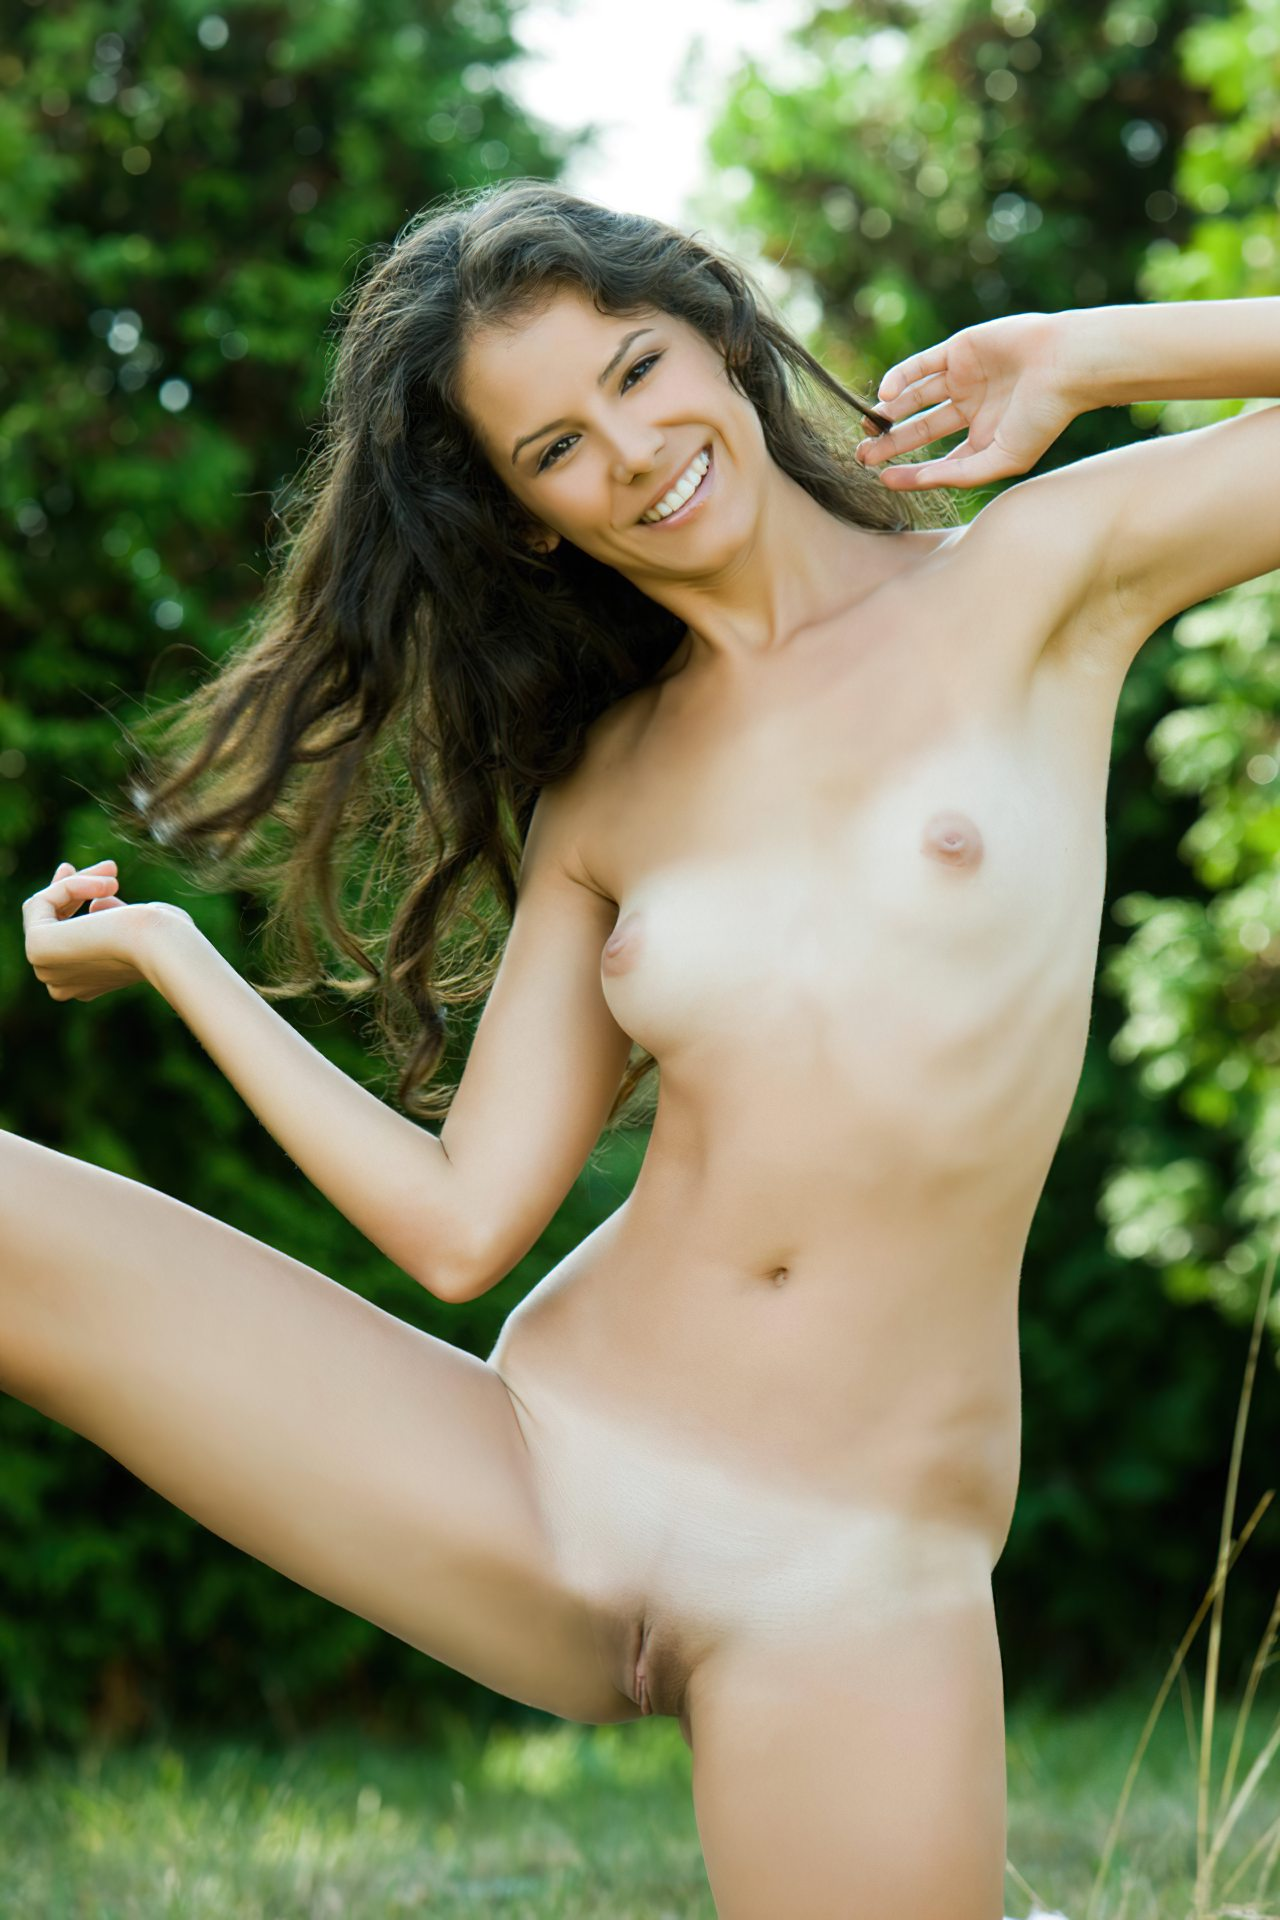 Imgs Sexys (50)